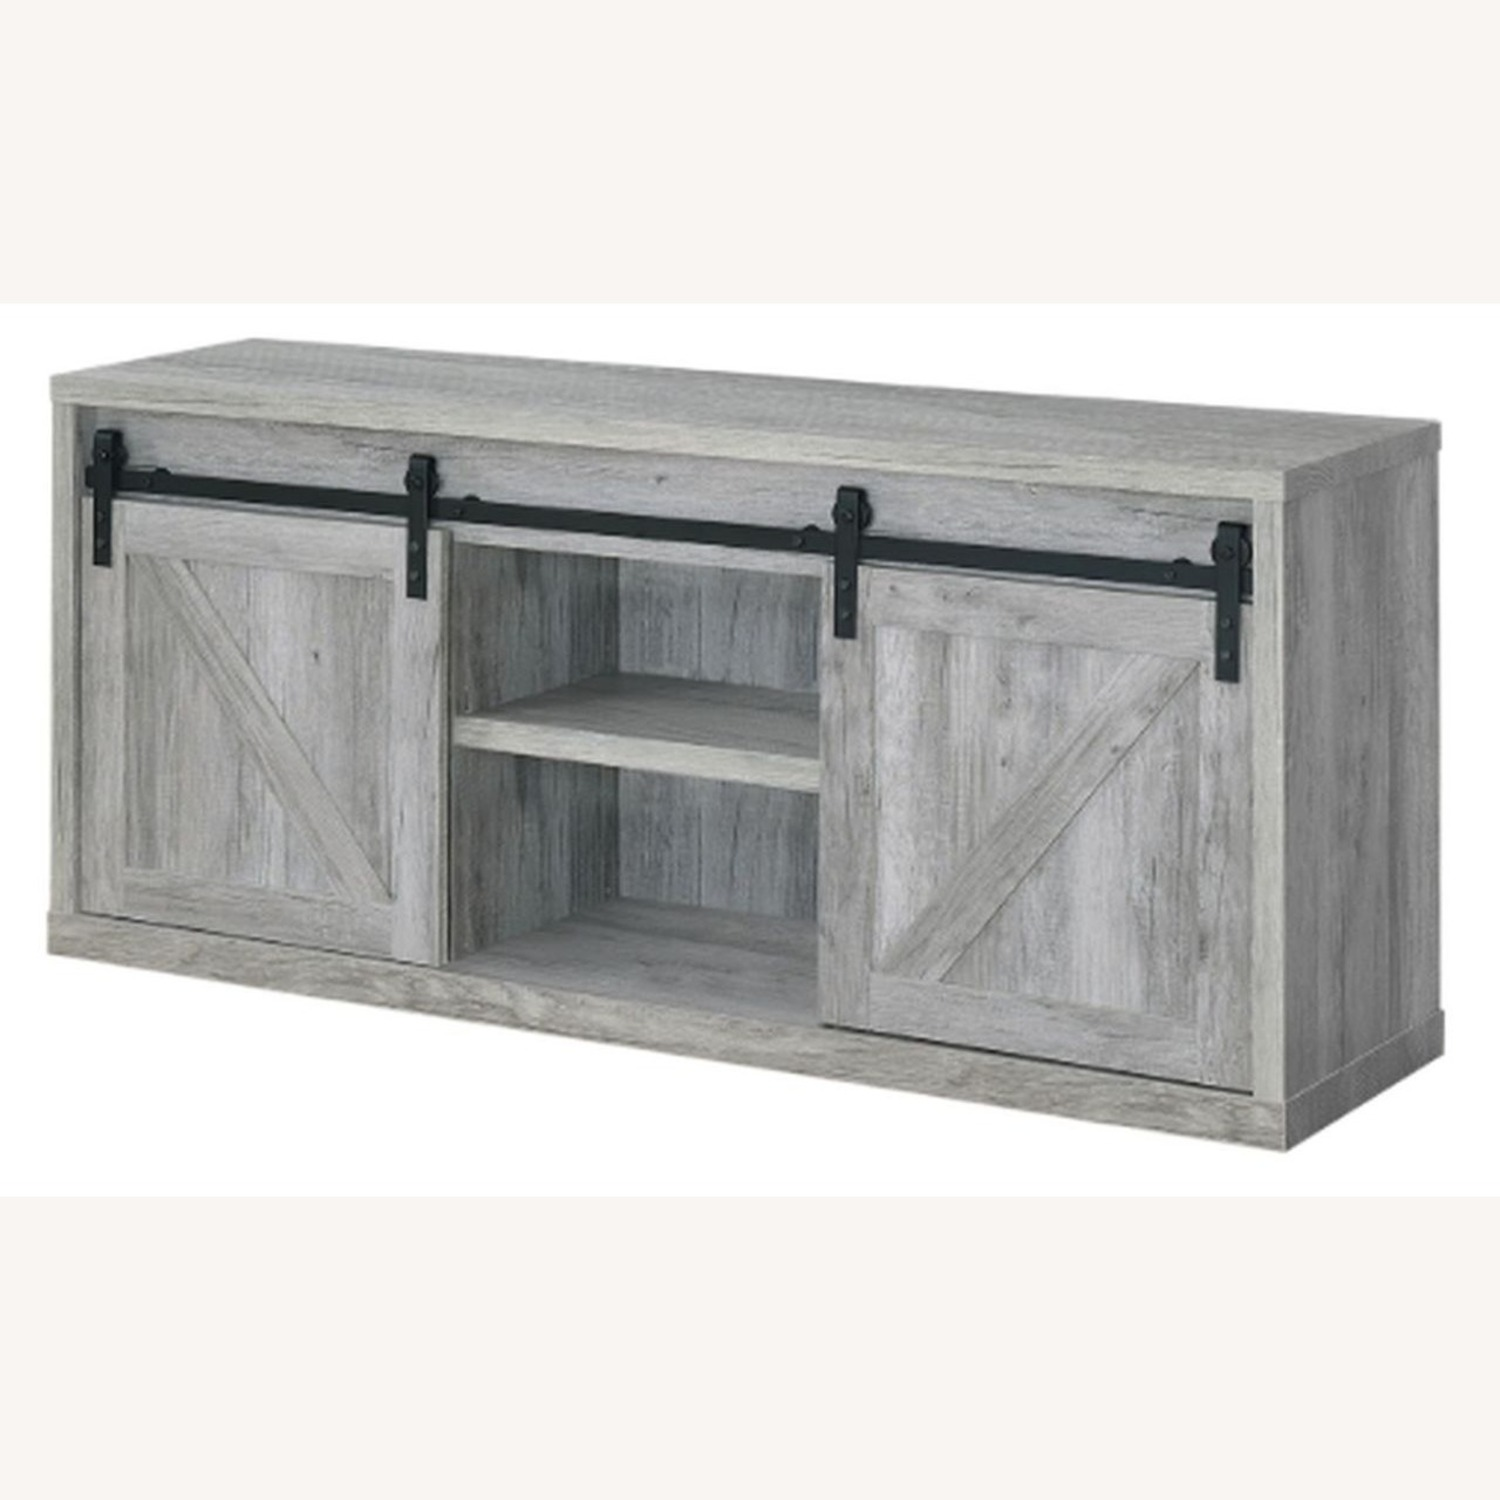 59-Inch TV Console In Grey Driftwood Finish - image-1